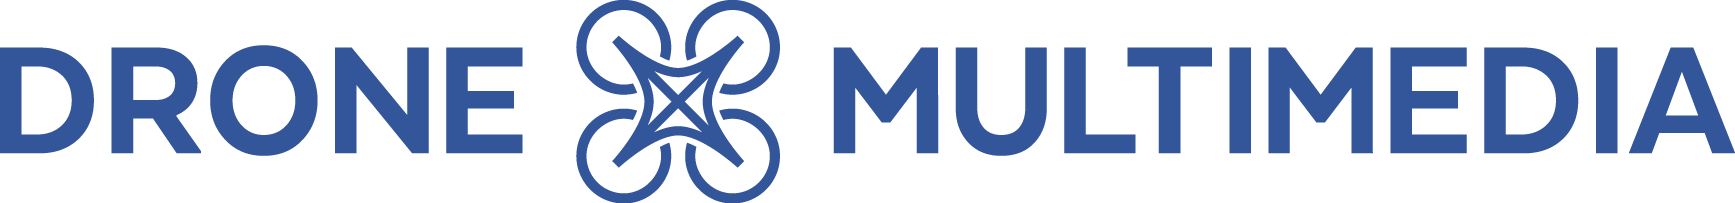 Drone Multimedia Logo